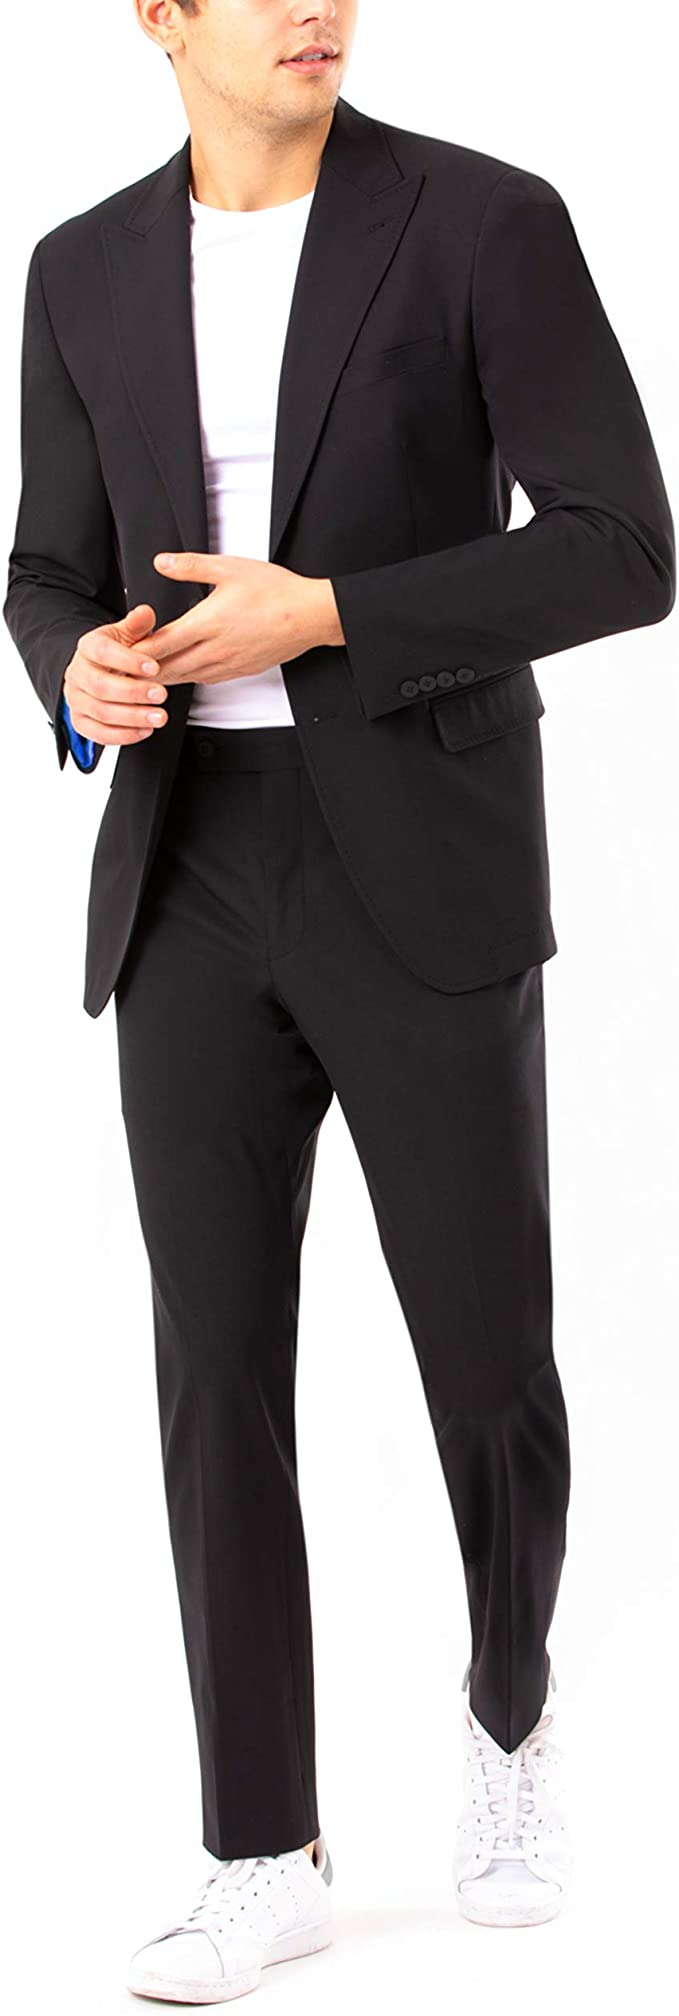 DKNY Men's Regular Active Tailored Suit, Black, 42R